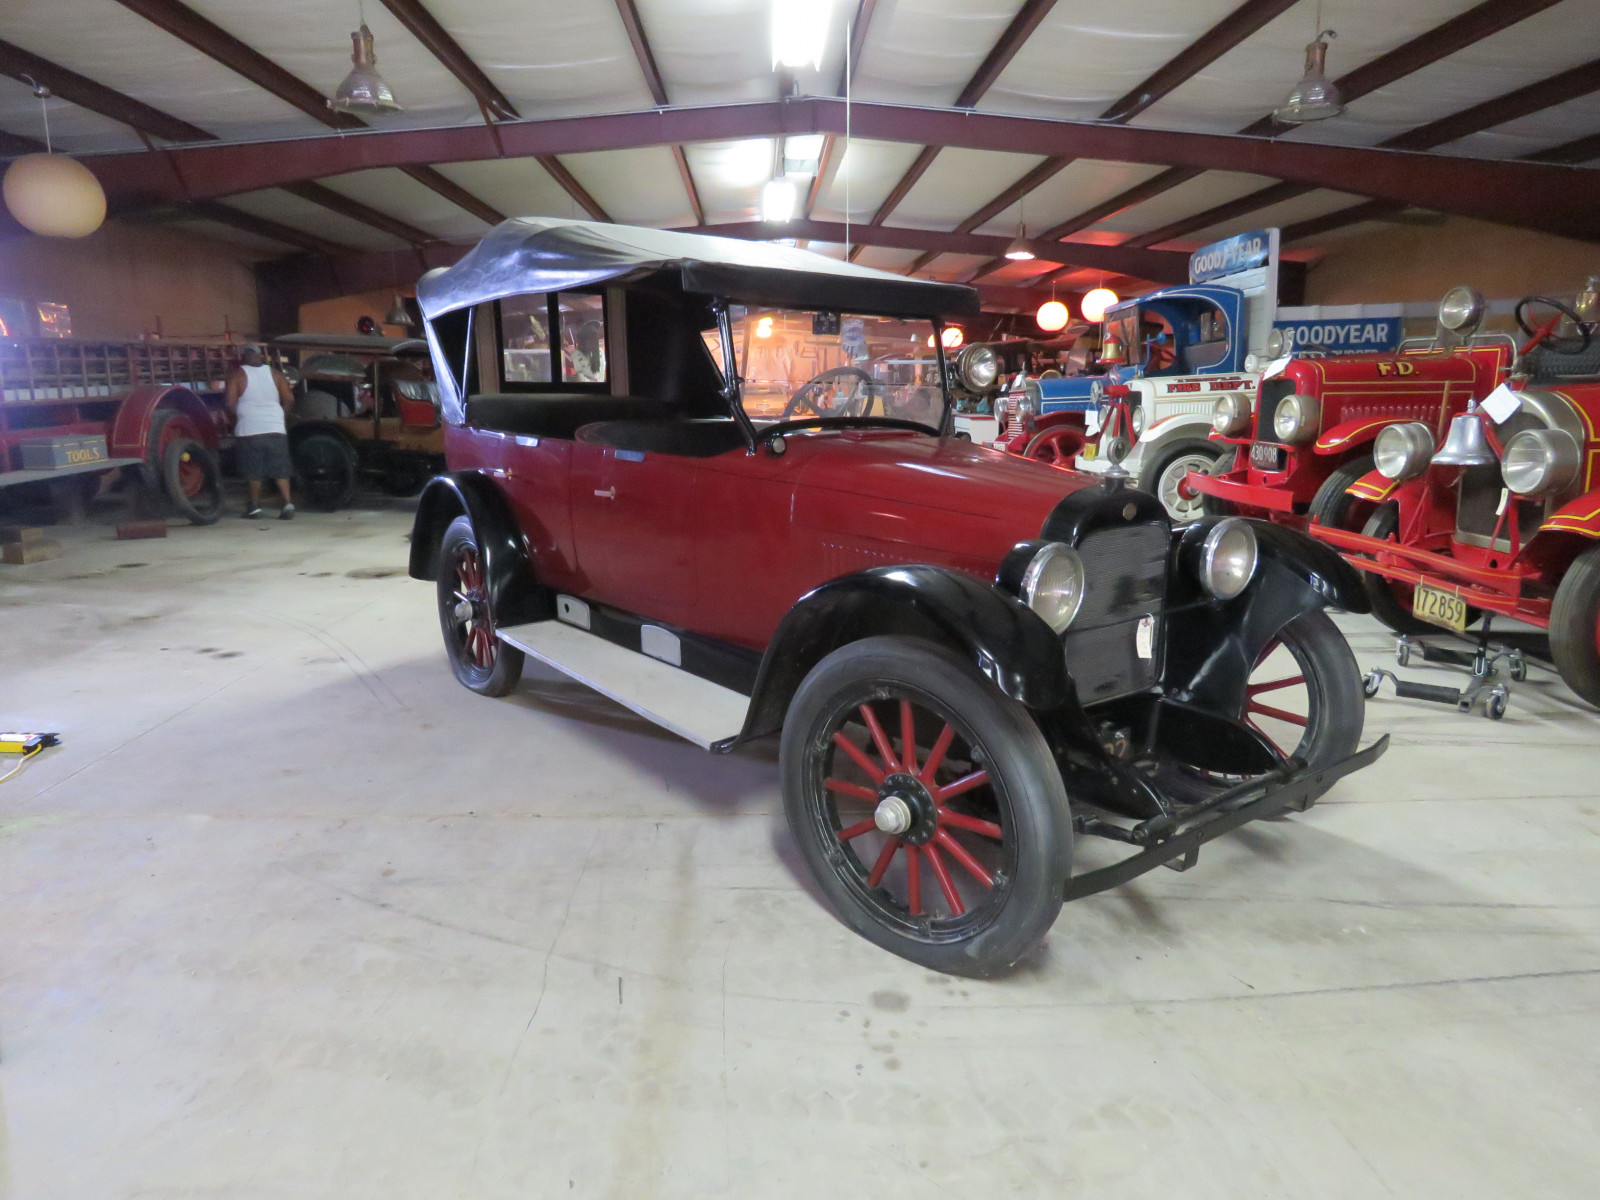 1917 Nash 4dr Touring Car - Image 1